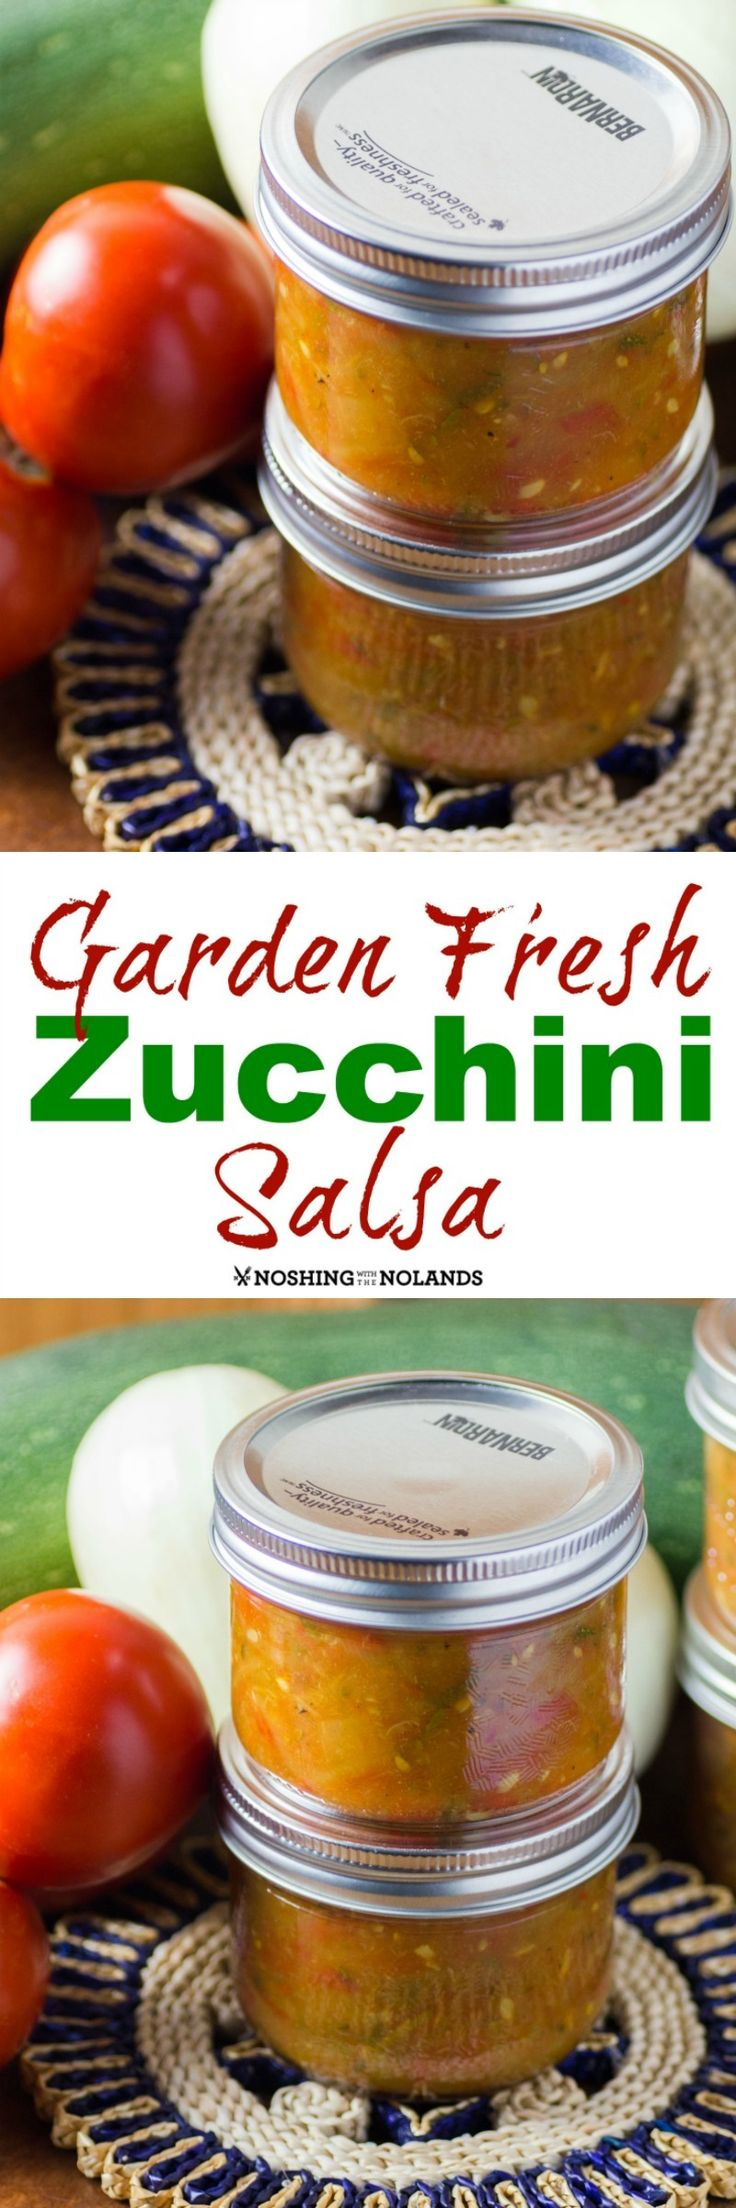 Garden Fresh Zucchini Salsa by Noshing With The Nolands is an excellent way to use up those extra zucchini from your garden or the farmers market!